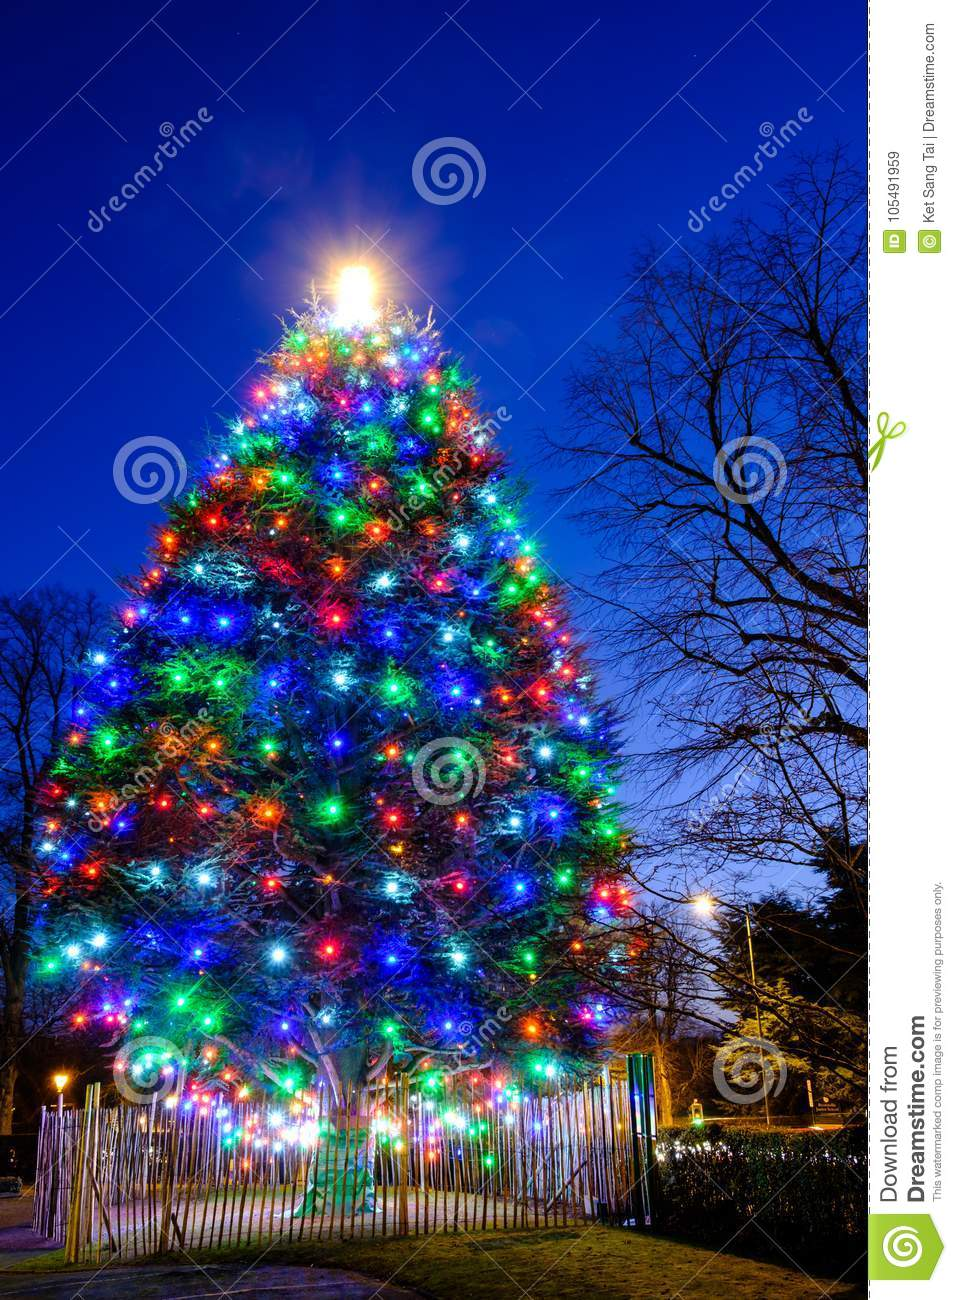 colorful lights on a real outdoot christmas tree